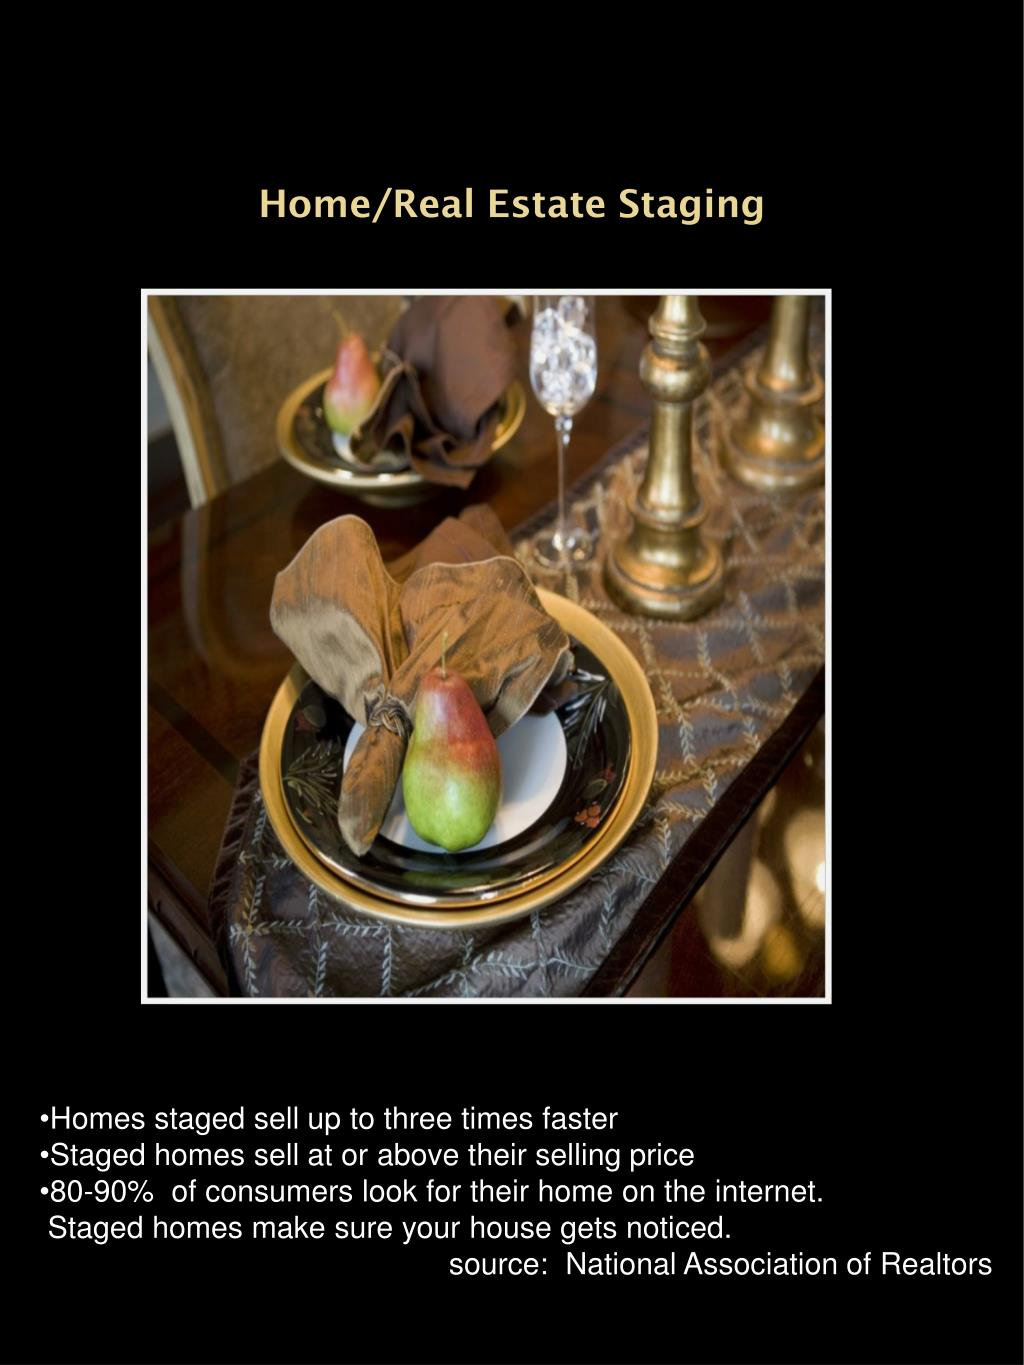 Home/Real Estate Staging